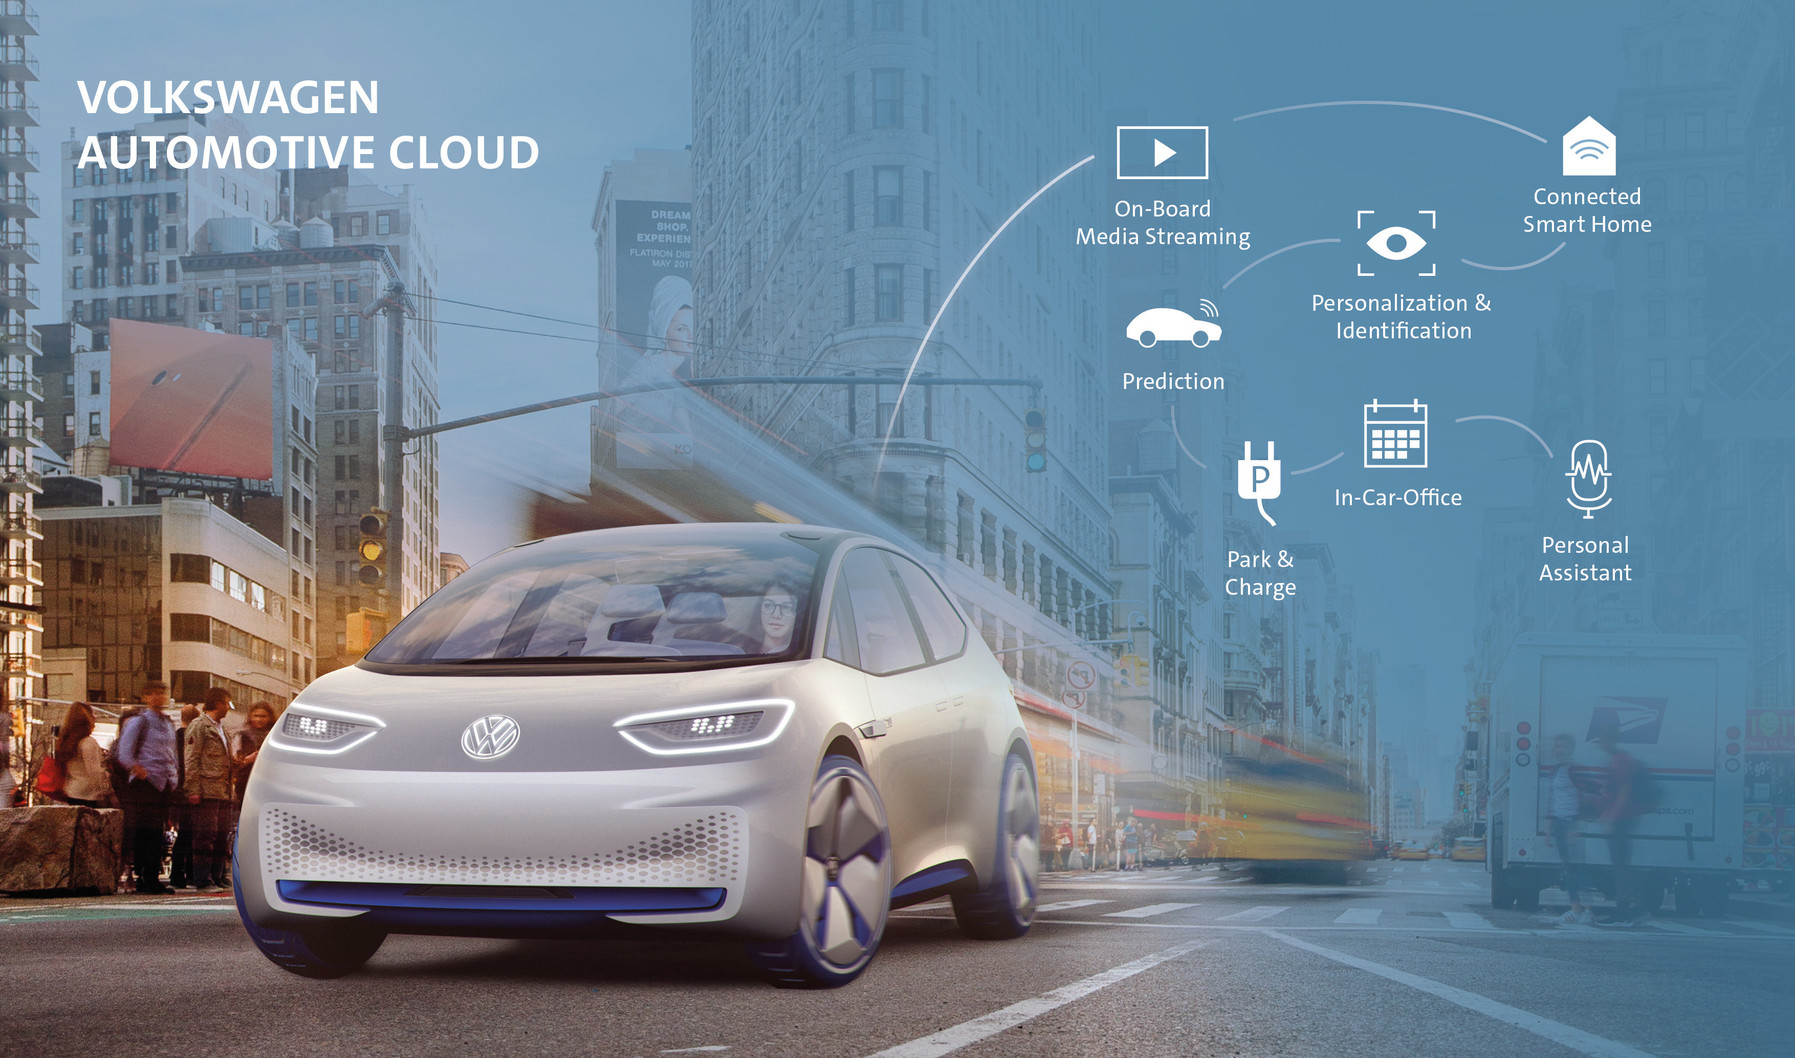 Volkswagen partners with Microsoft to keep cars connected to the cloud